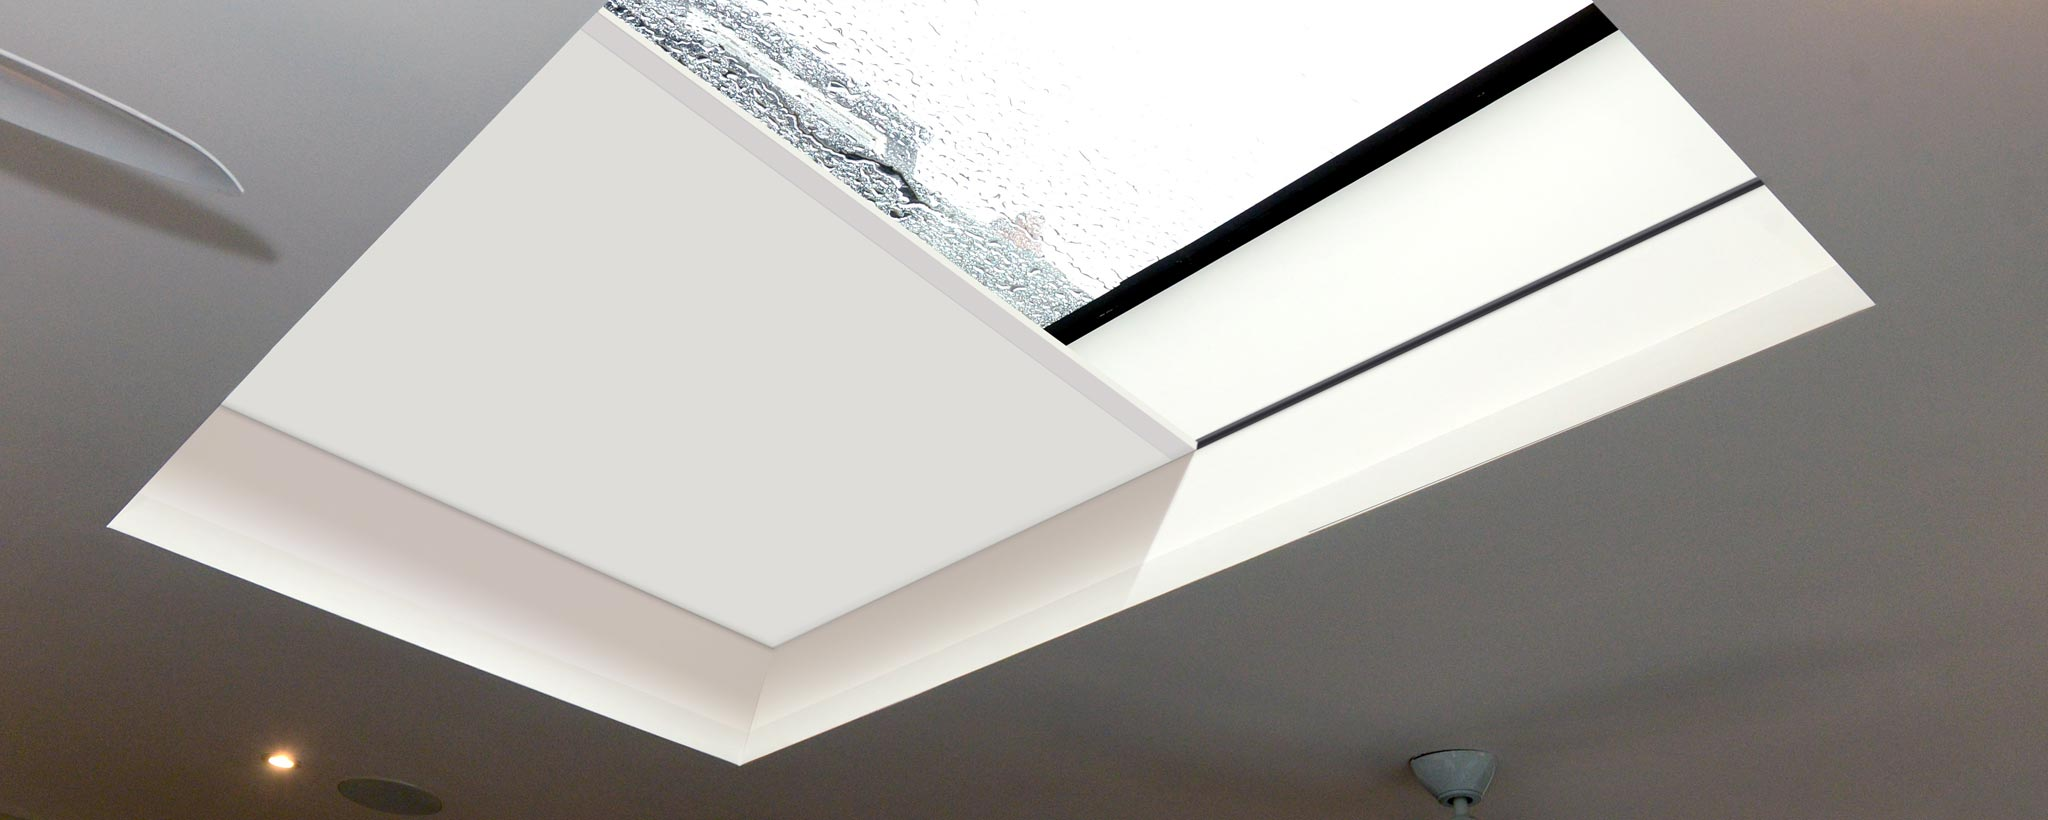 Rooflight and lantern blinds